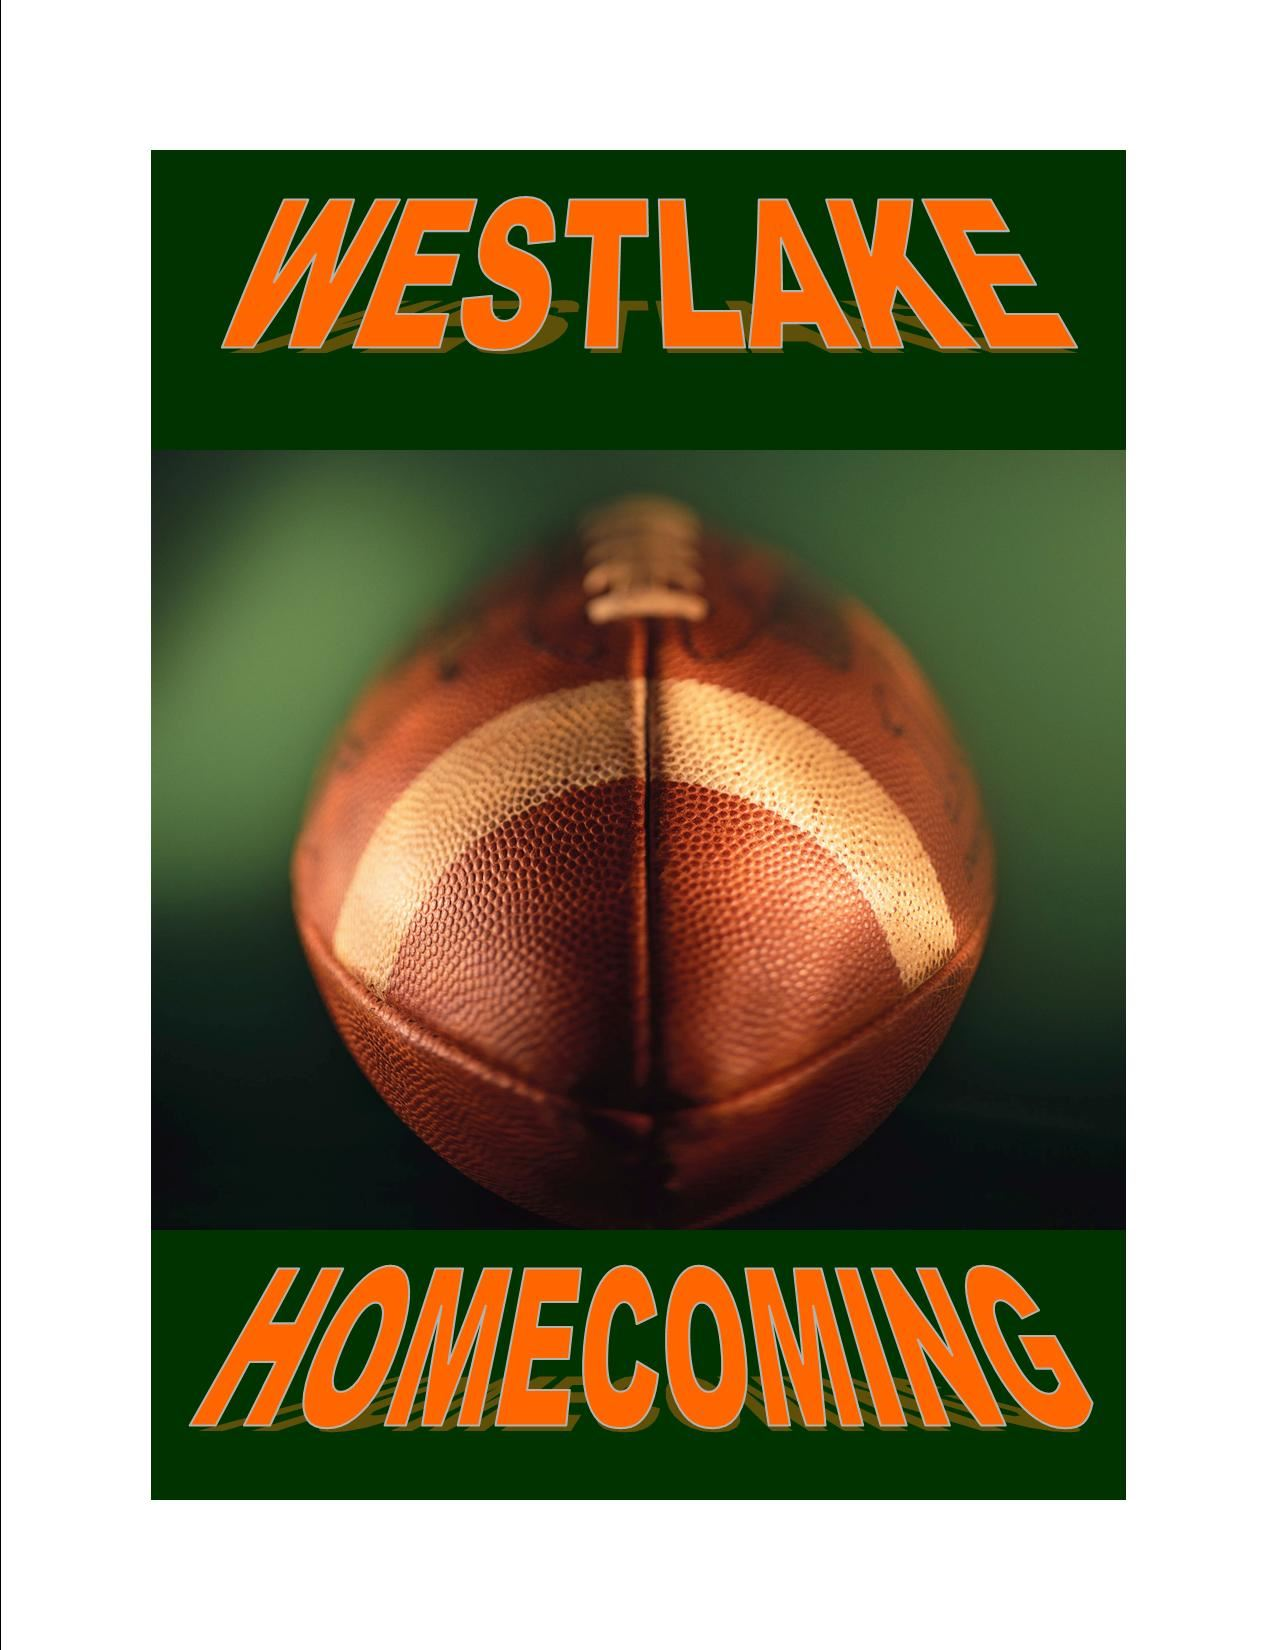 Friday October 4, 2019  12:00 Dismissal for Westlake Homecoming (No Extended Day)